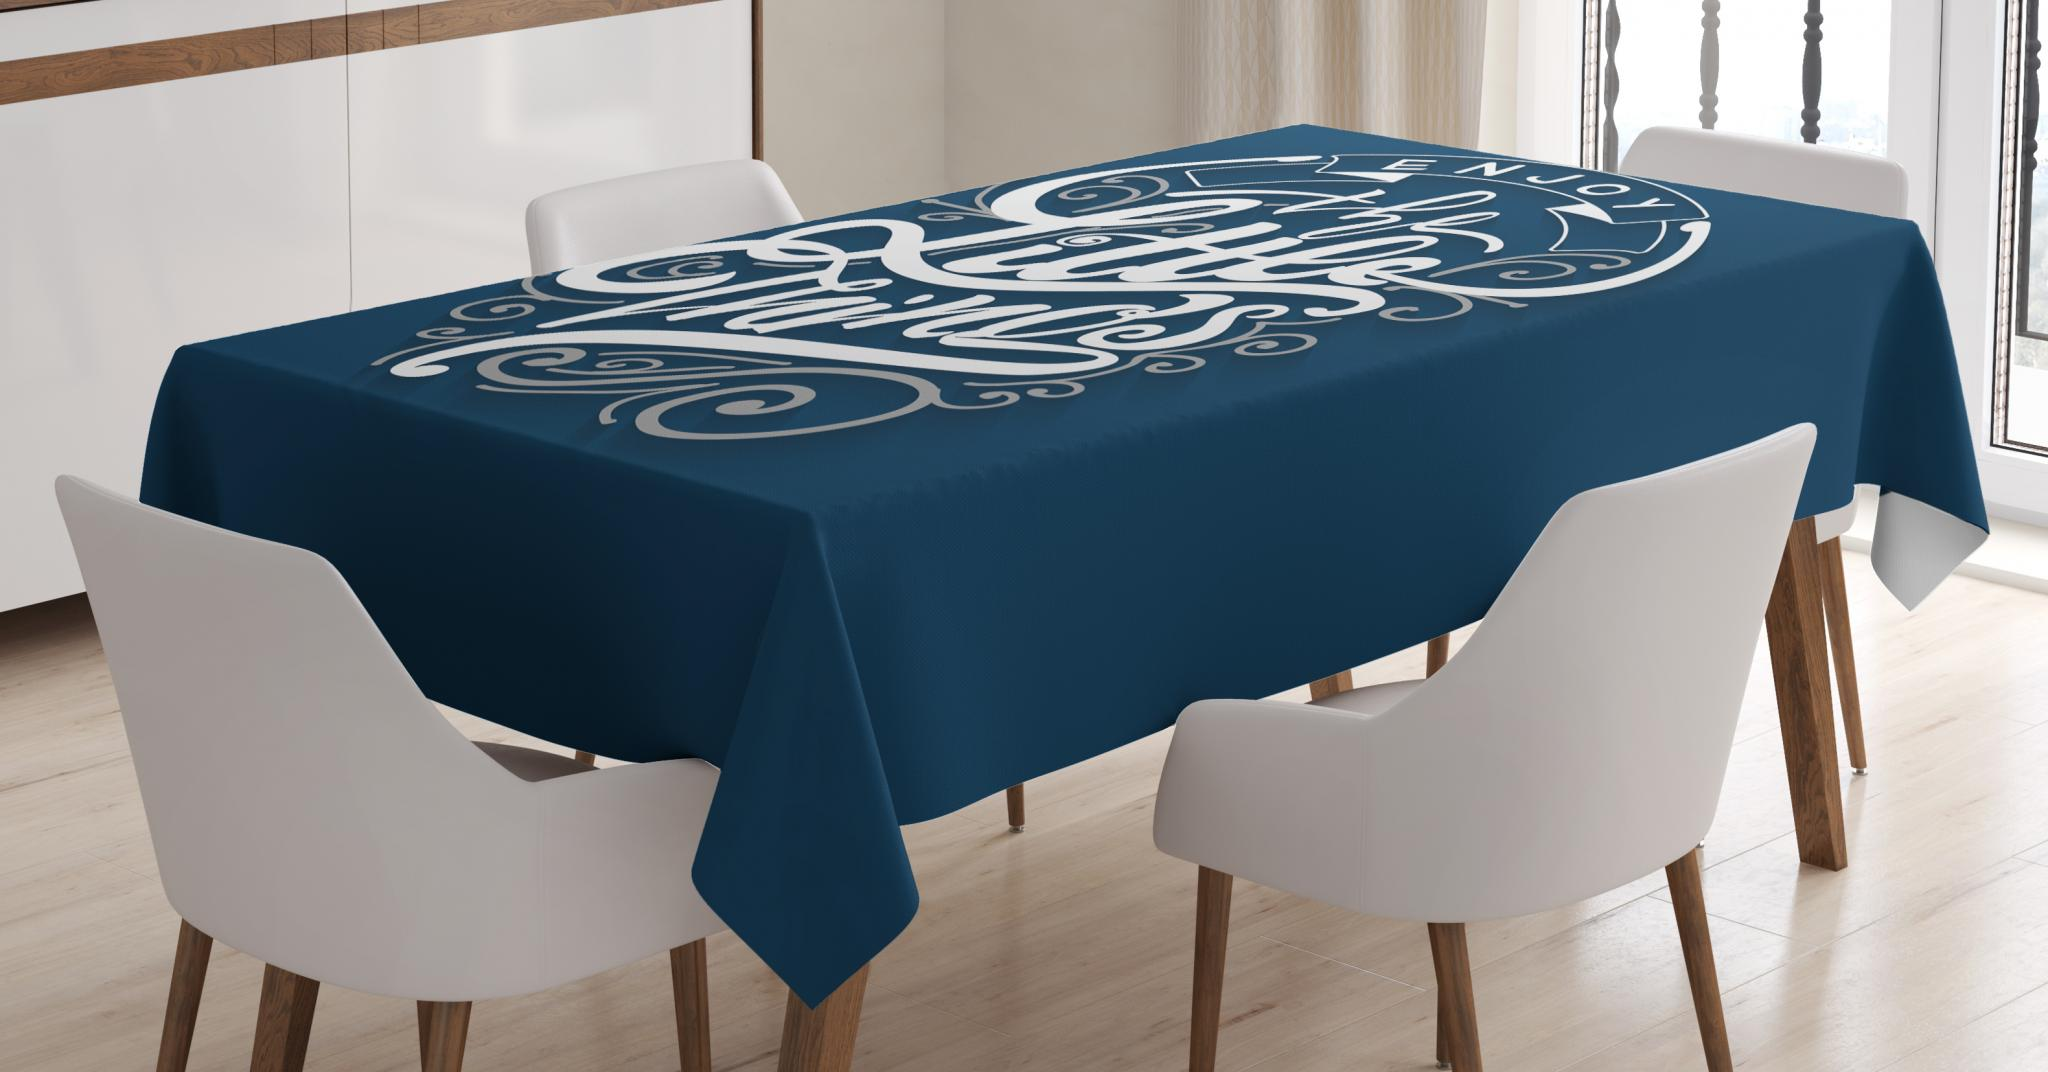 Navy Blue Dining Table: Enjoy The Little Things Tablecloth, Positive Phrase With